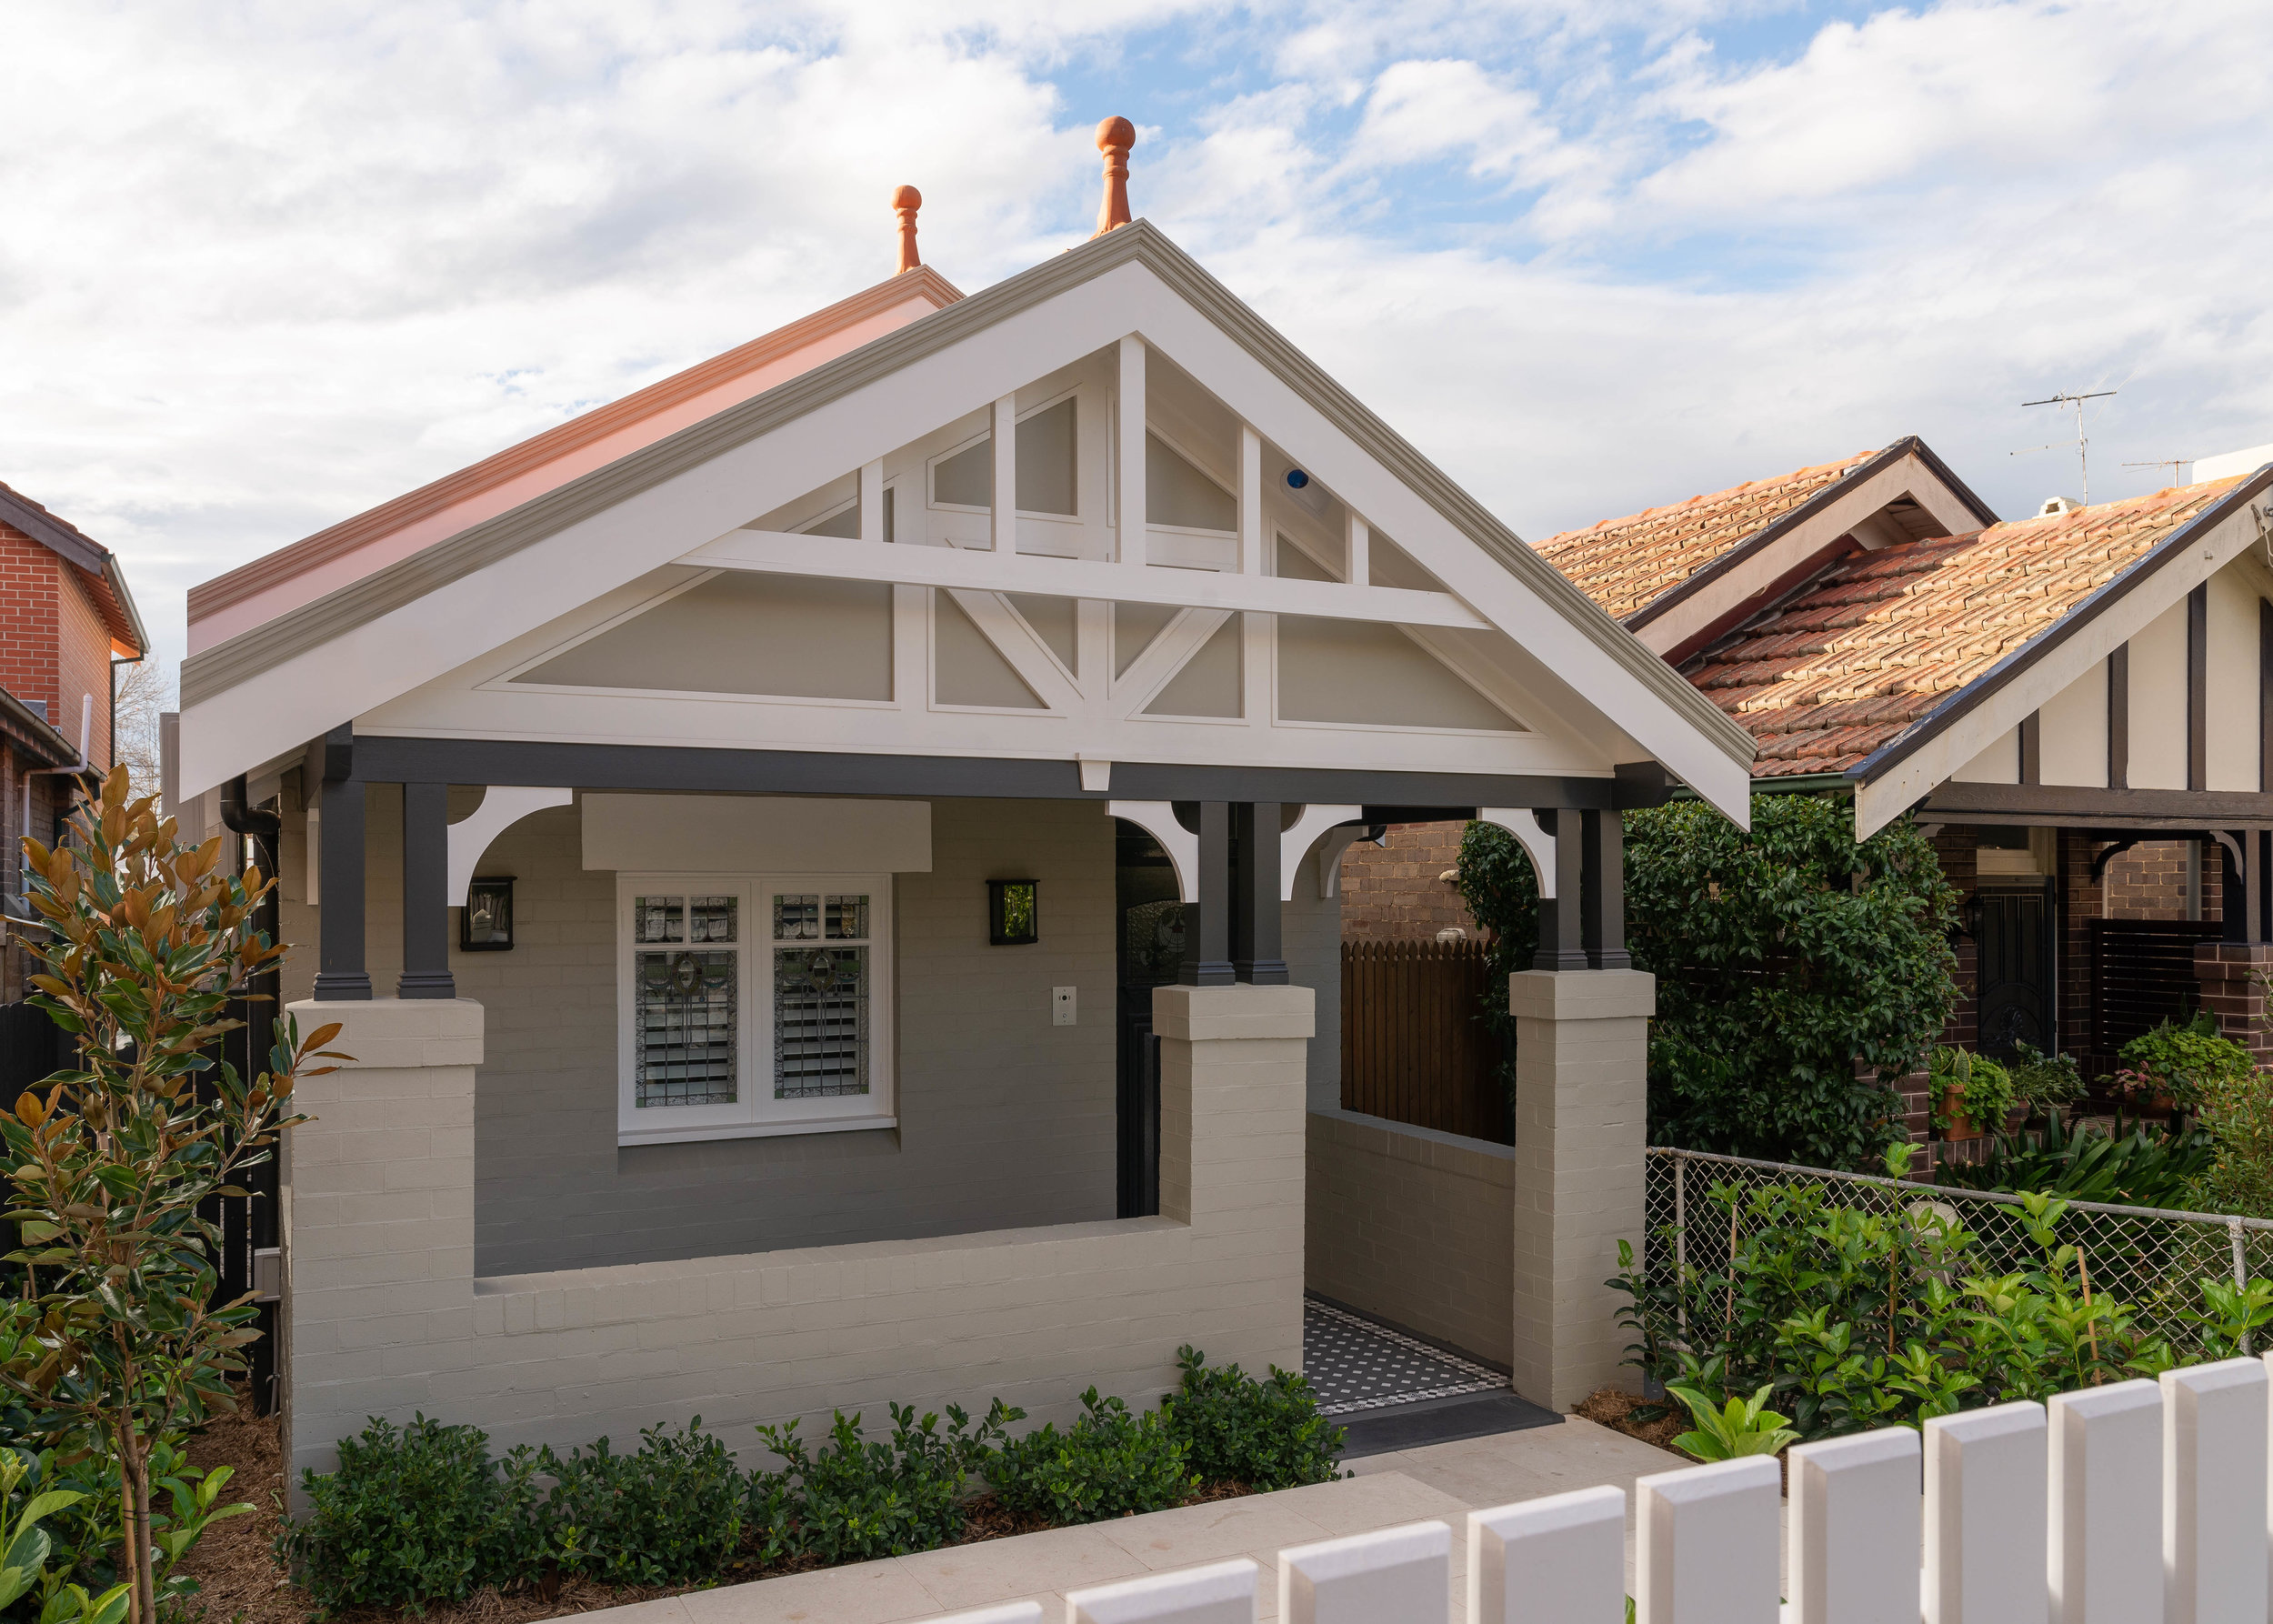 Crows Nest - Heritage Conservation